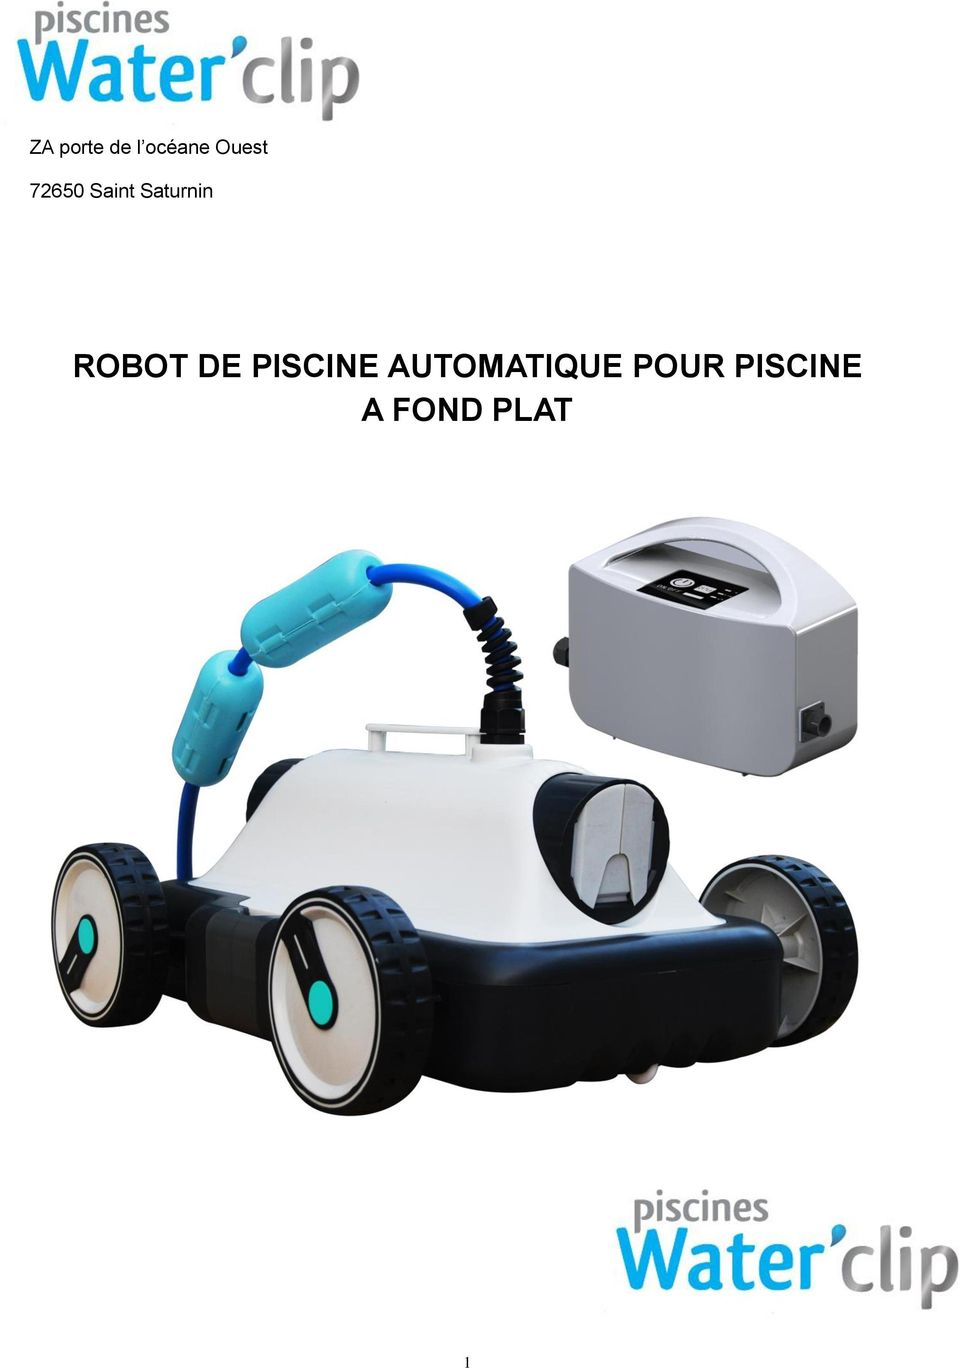 Robot de piscine automatique beautiful robot de picine et for Aspirateur piscine kontiki